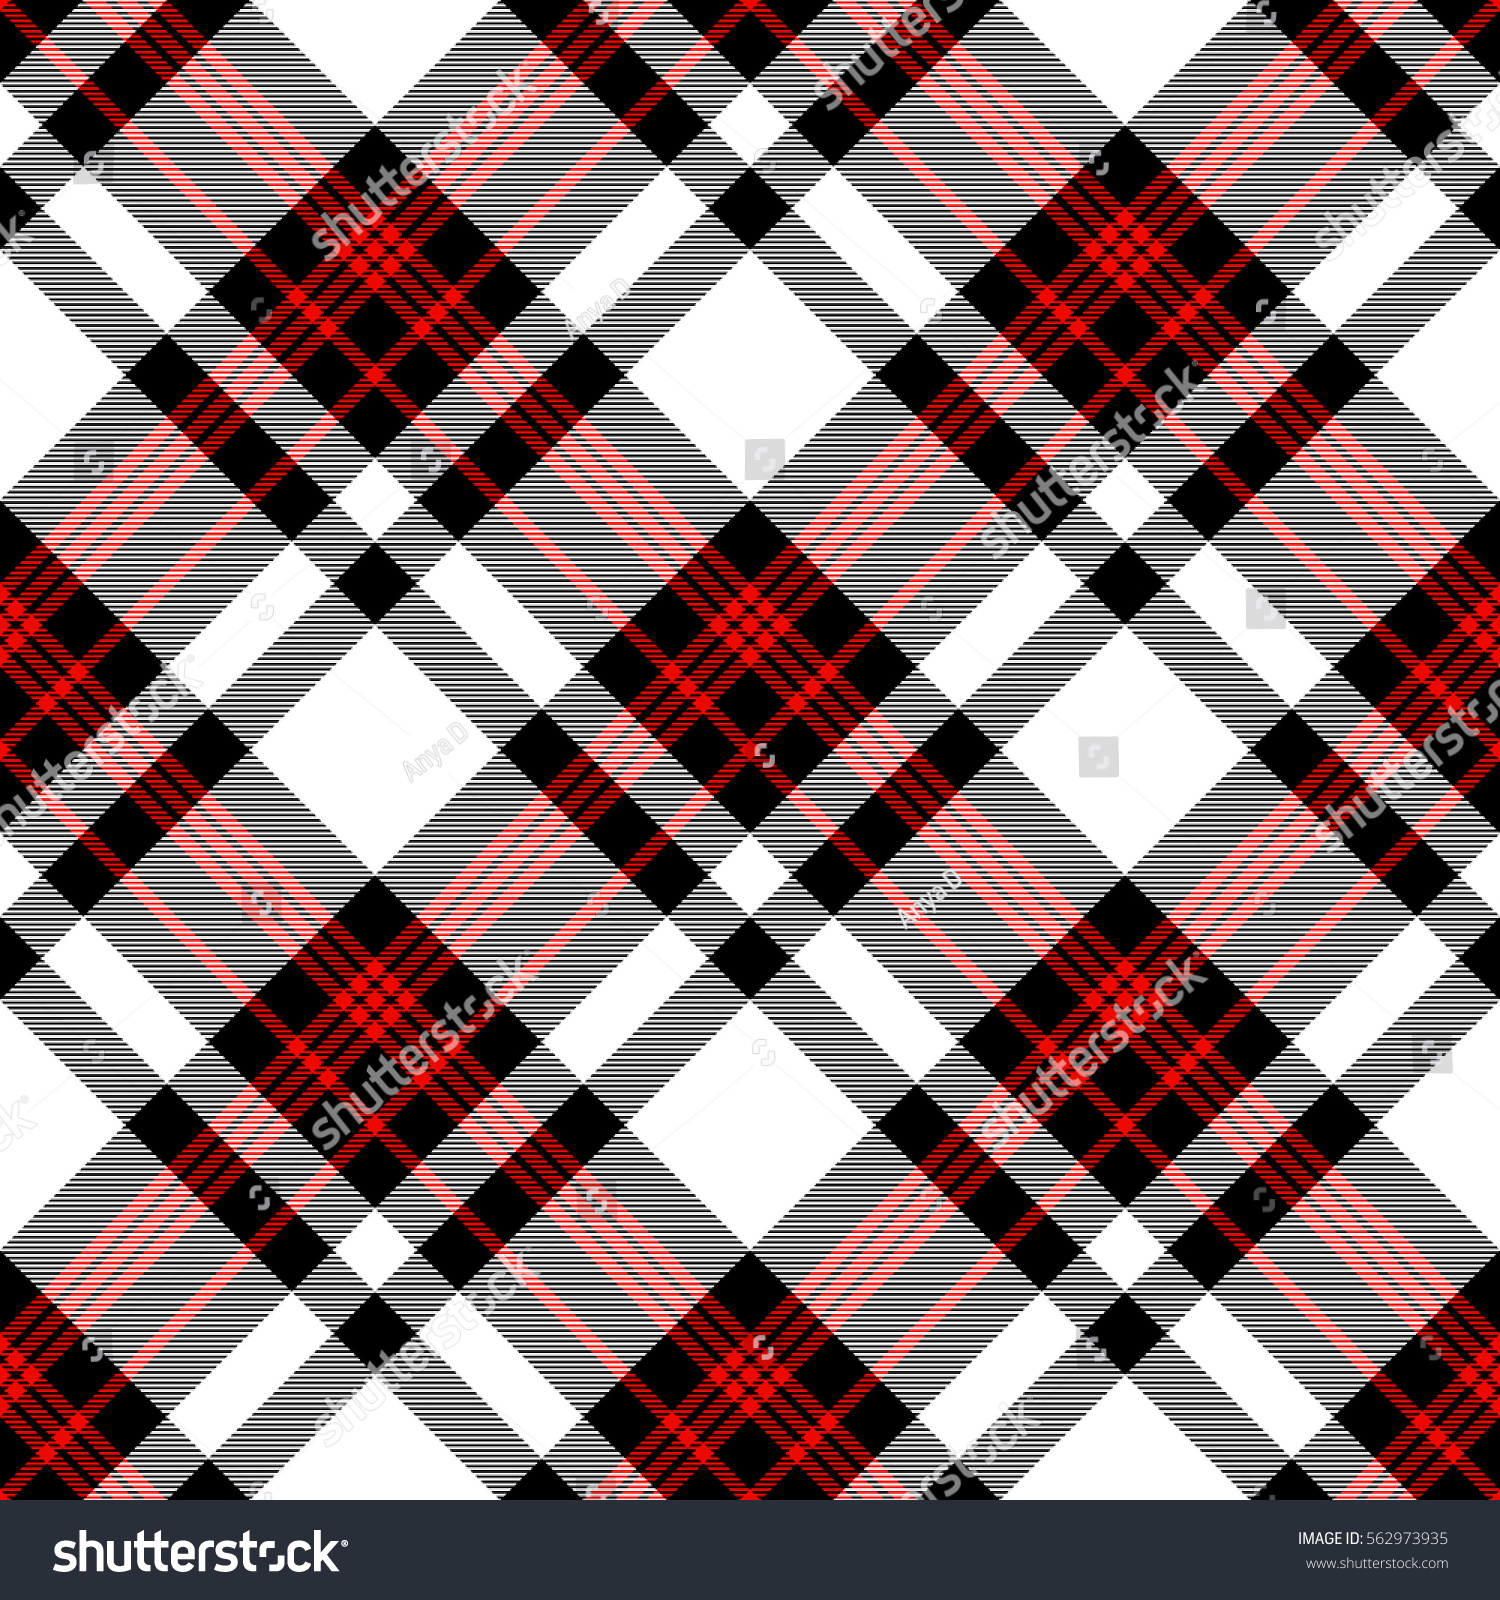 Seamless black and white checkered texture stock images image - Seamless Tartan Plaid Pattern In Stripes Of Red Black And White Checkered Twill Fabric